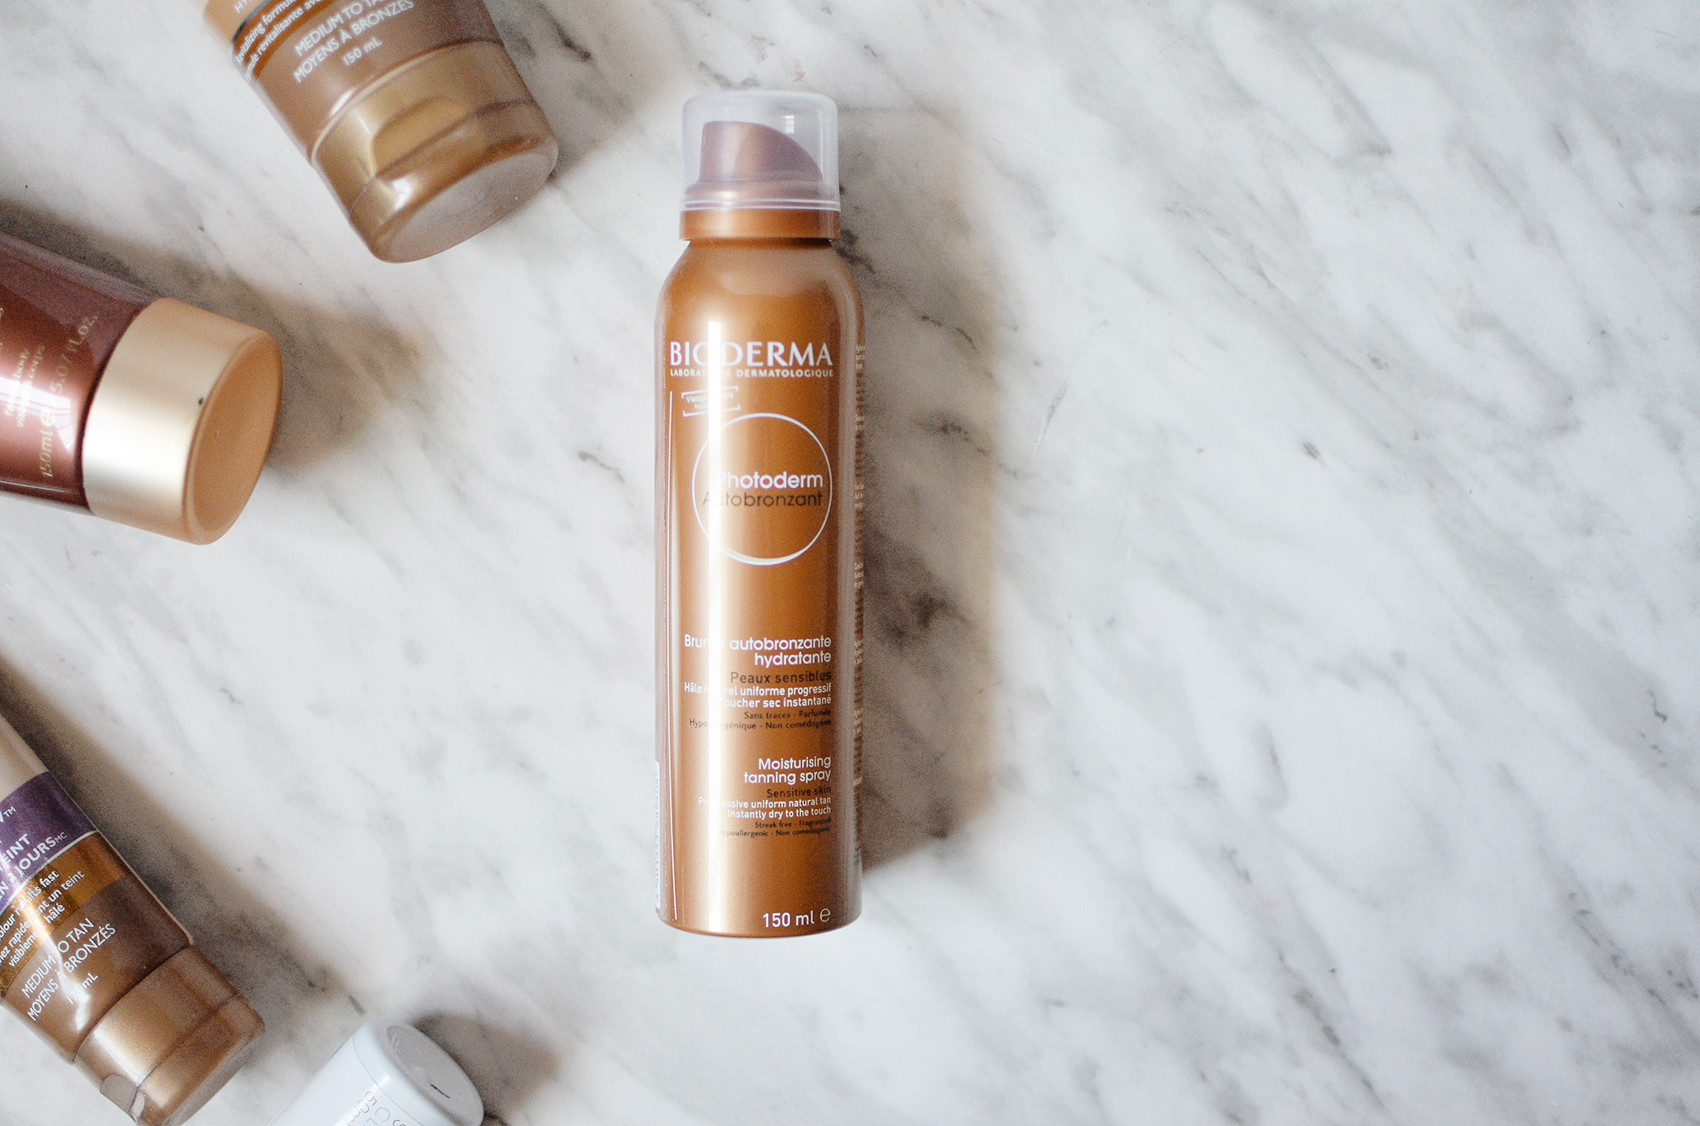 Foolproof Self-Tanning with Bioderma Photoderm Autobronzant.